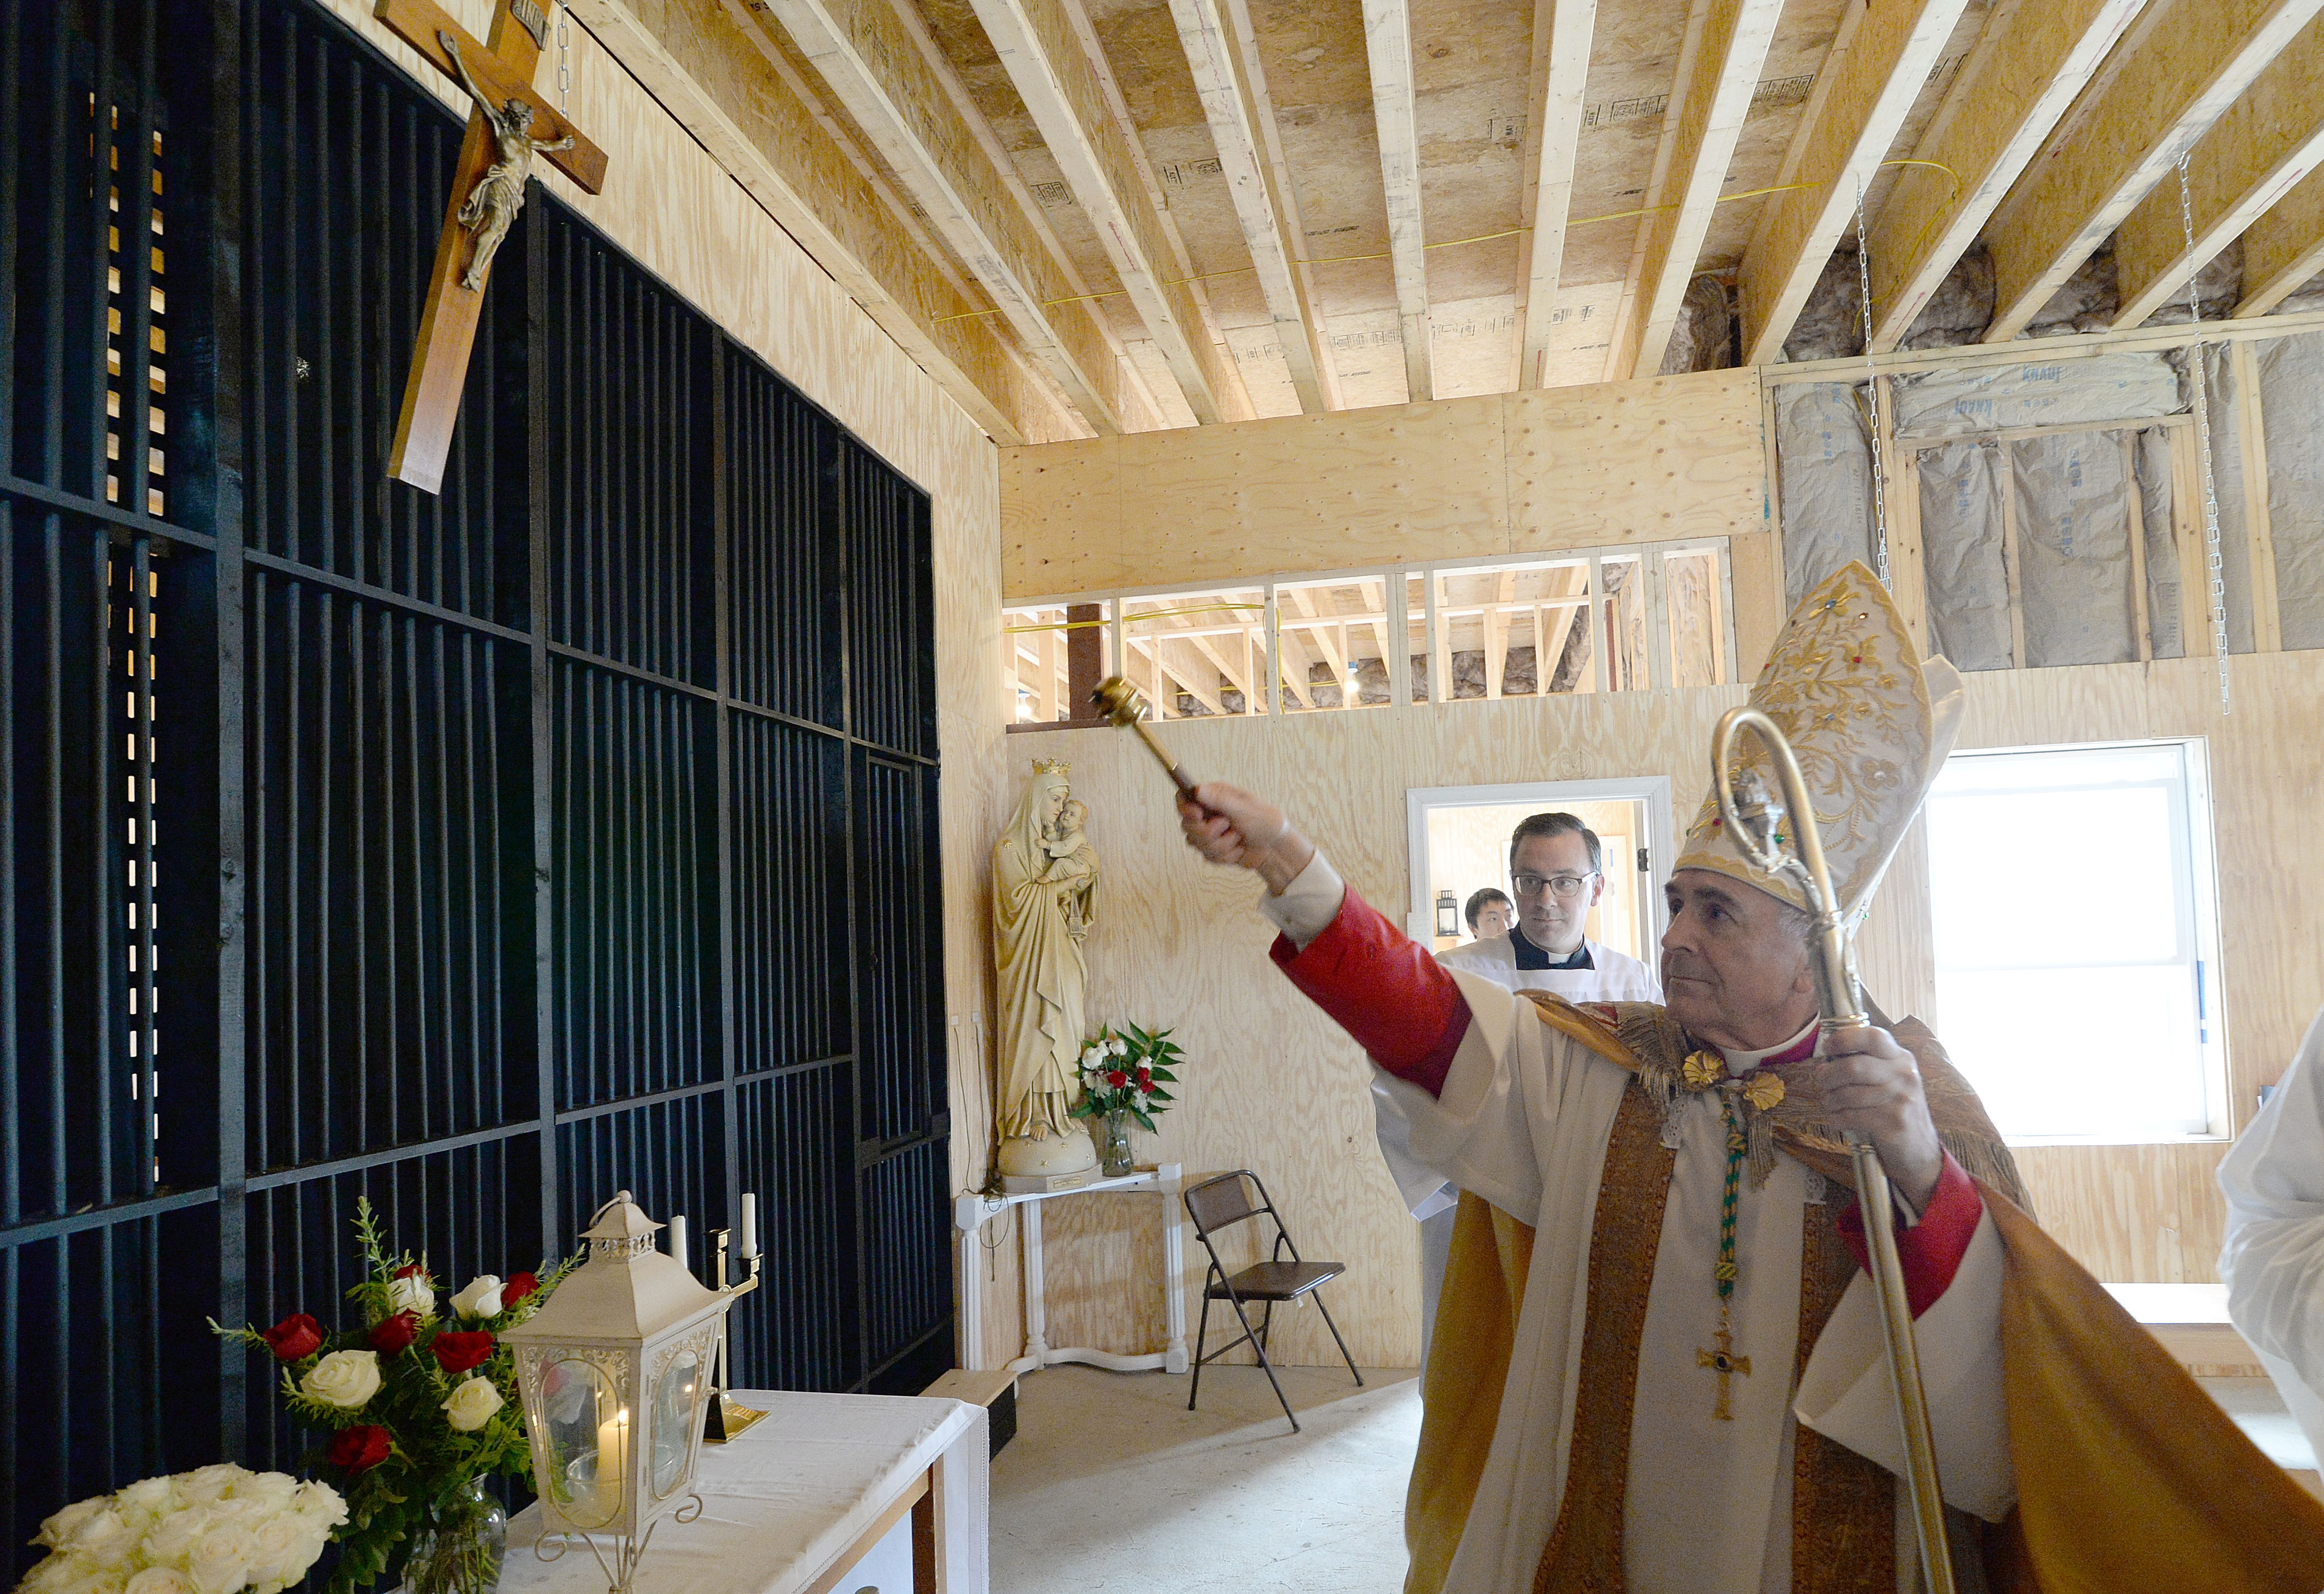 Discalced Carmelites use time-honored skills to construct